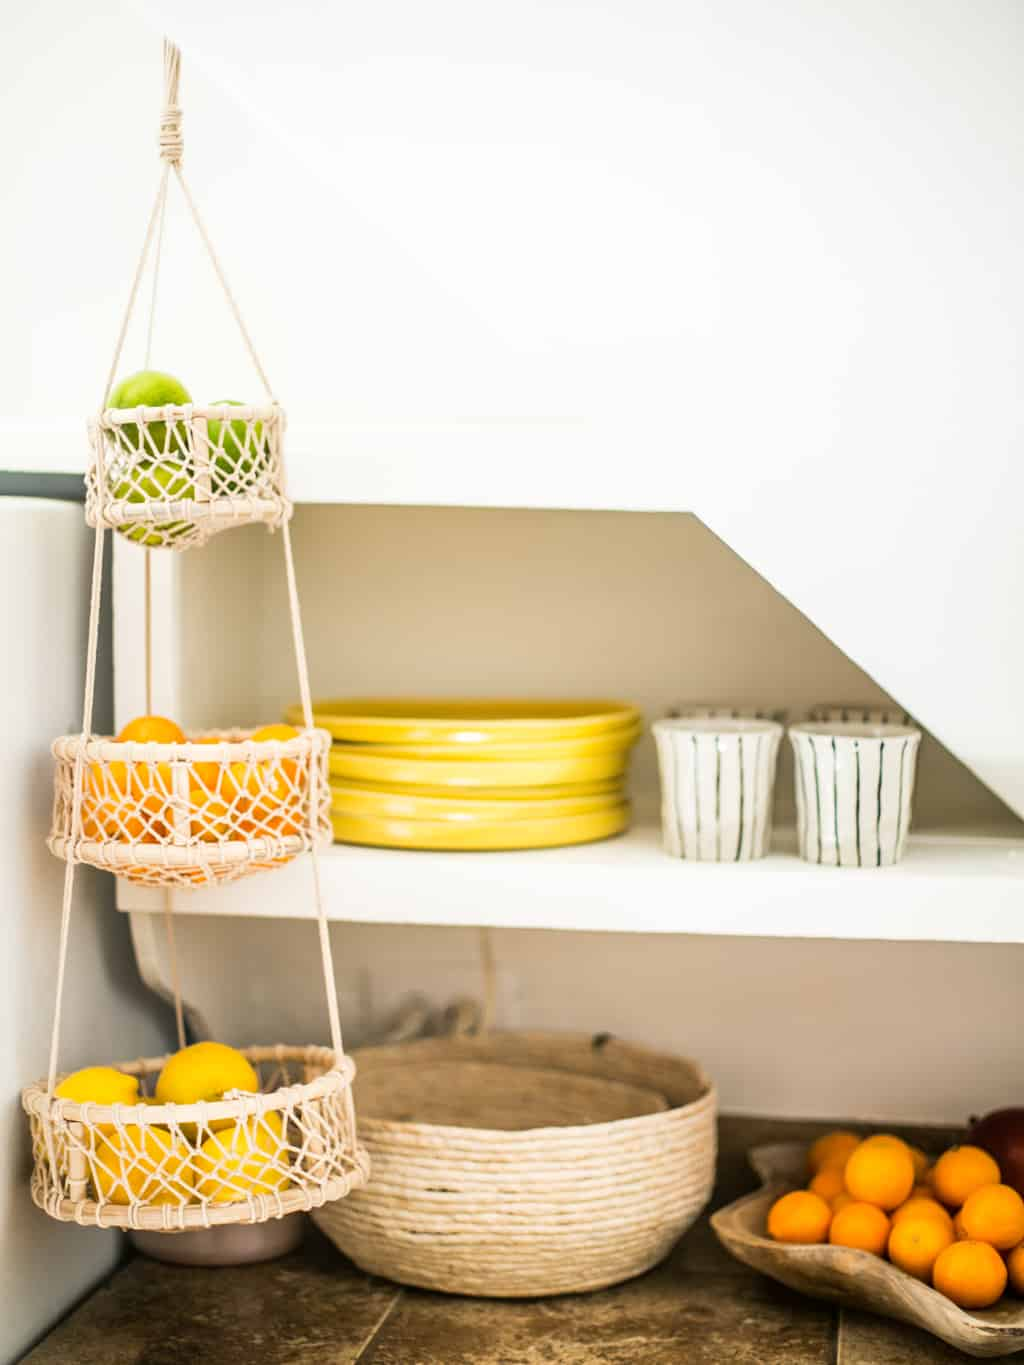 Corner of the kitchen with new yellow plates and coffee cups, with a hanging basket of fruit.